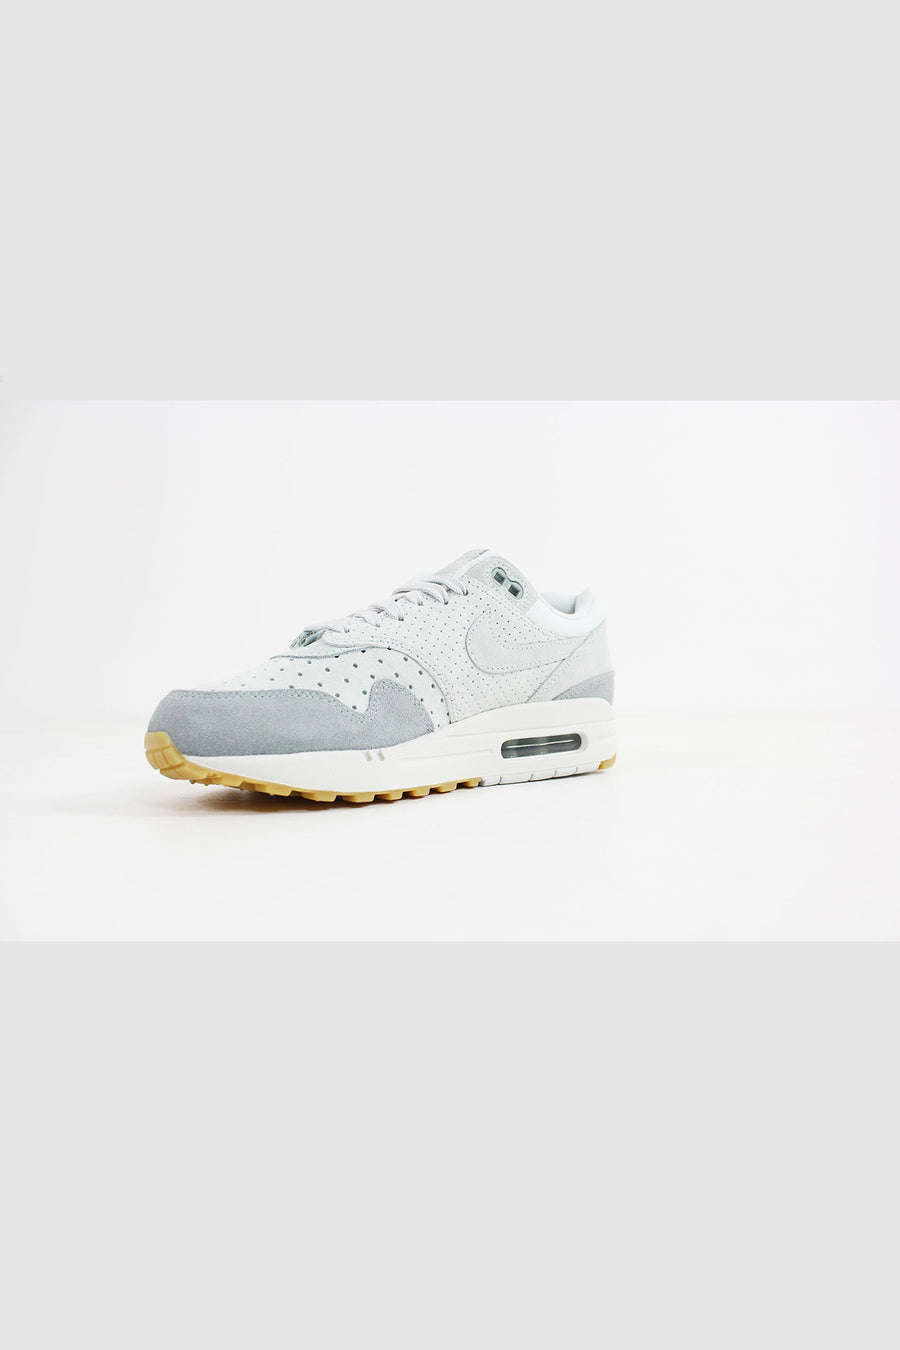 Nike - Air Max 1 Premium Women (Barely Grey/ Barley Grey Light Pumice) 454746-019